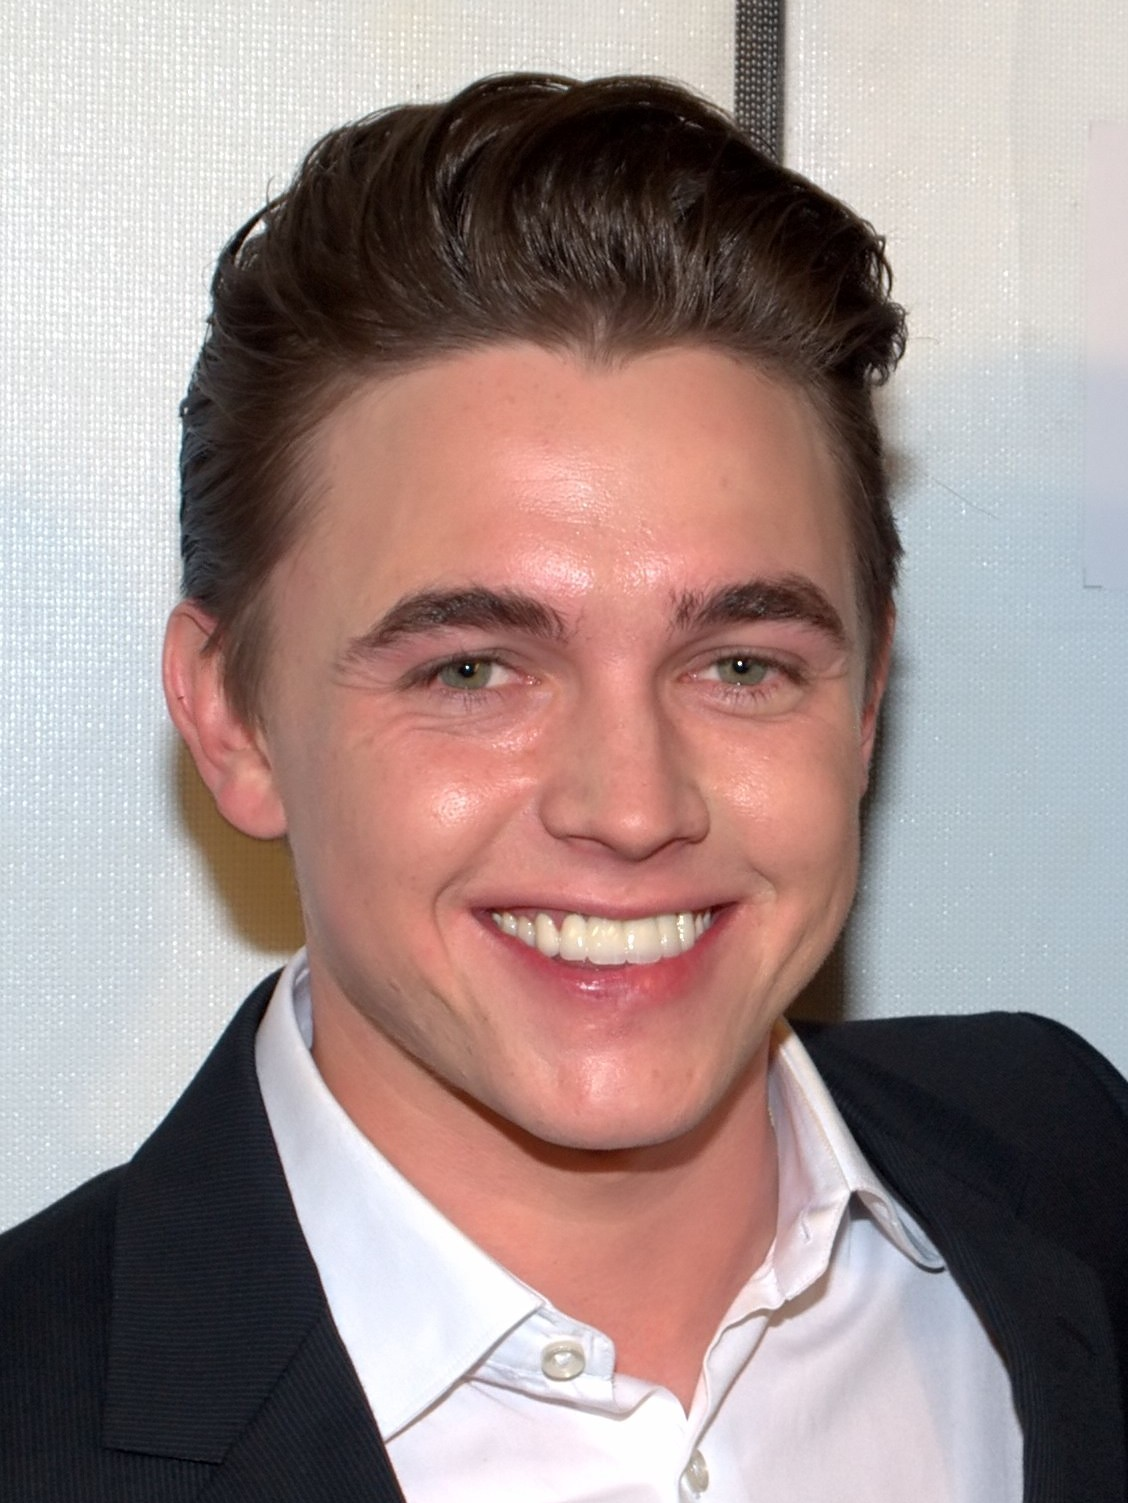 Jesse McCartney - Wikipedia